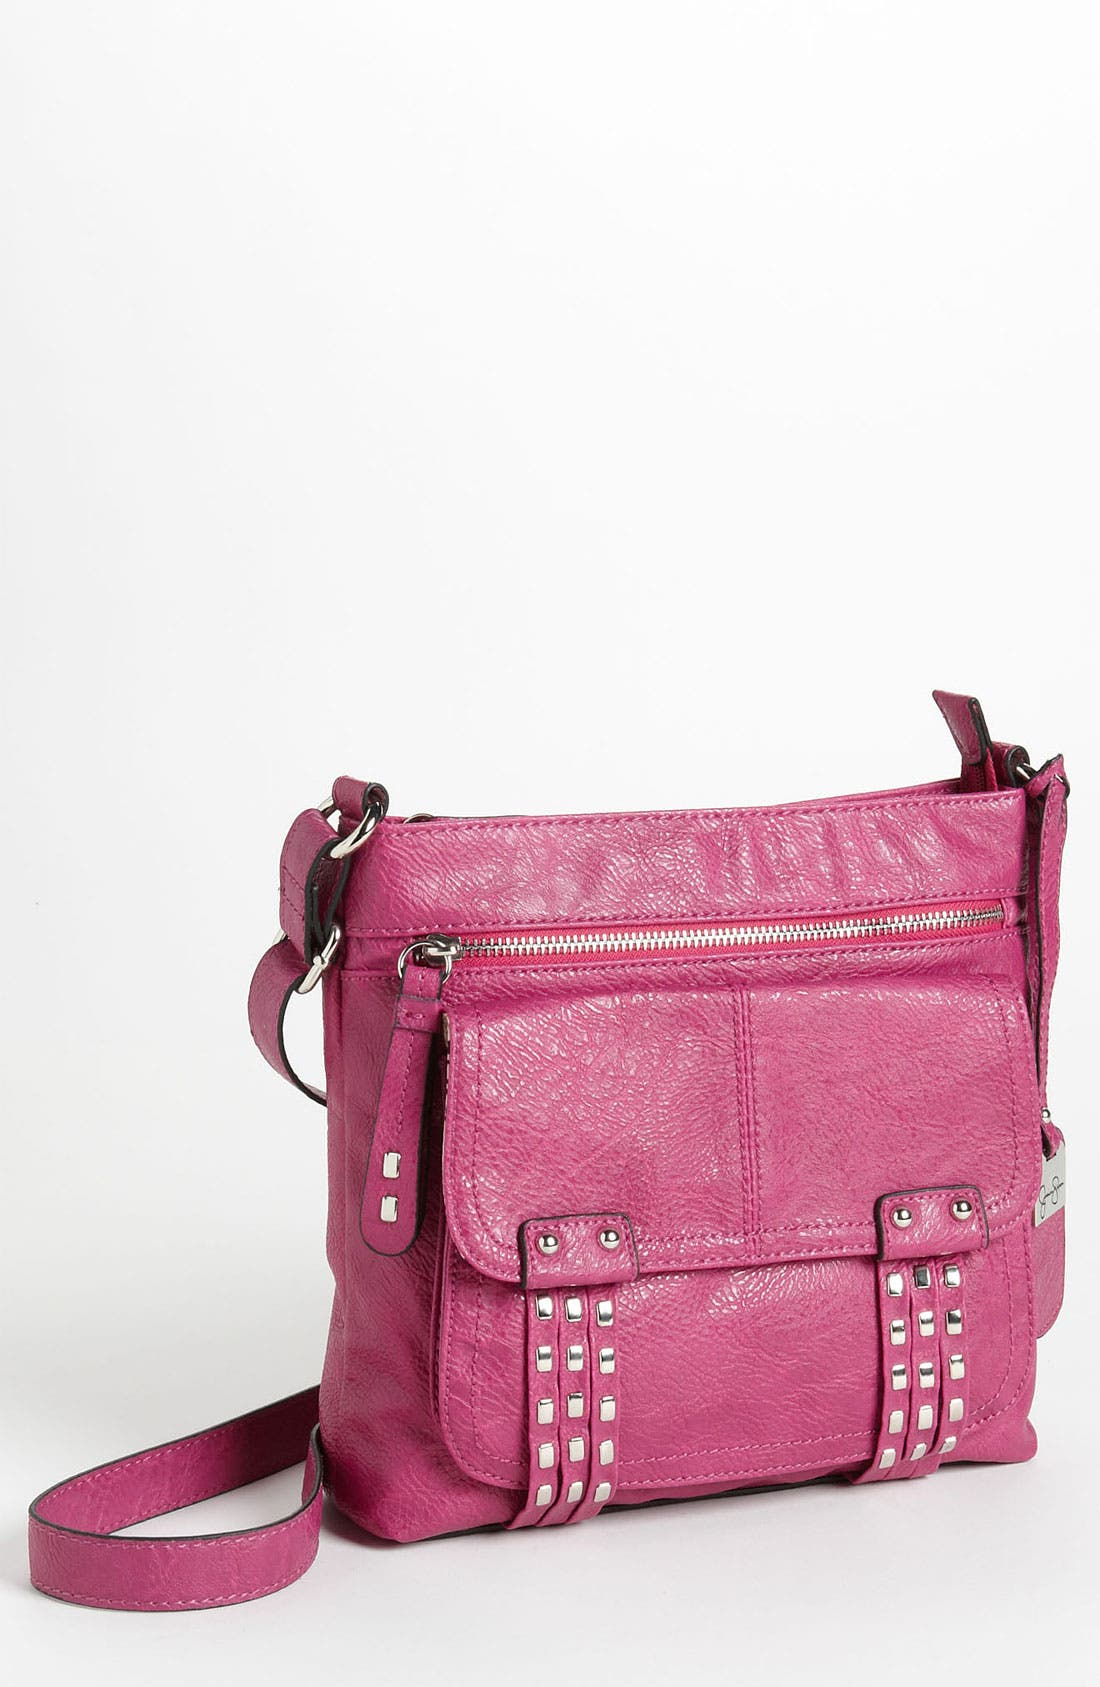 Alternate Image 1 Selected - Jessica Simpson 'Chelsea' Crossbody Bag